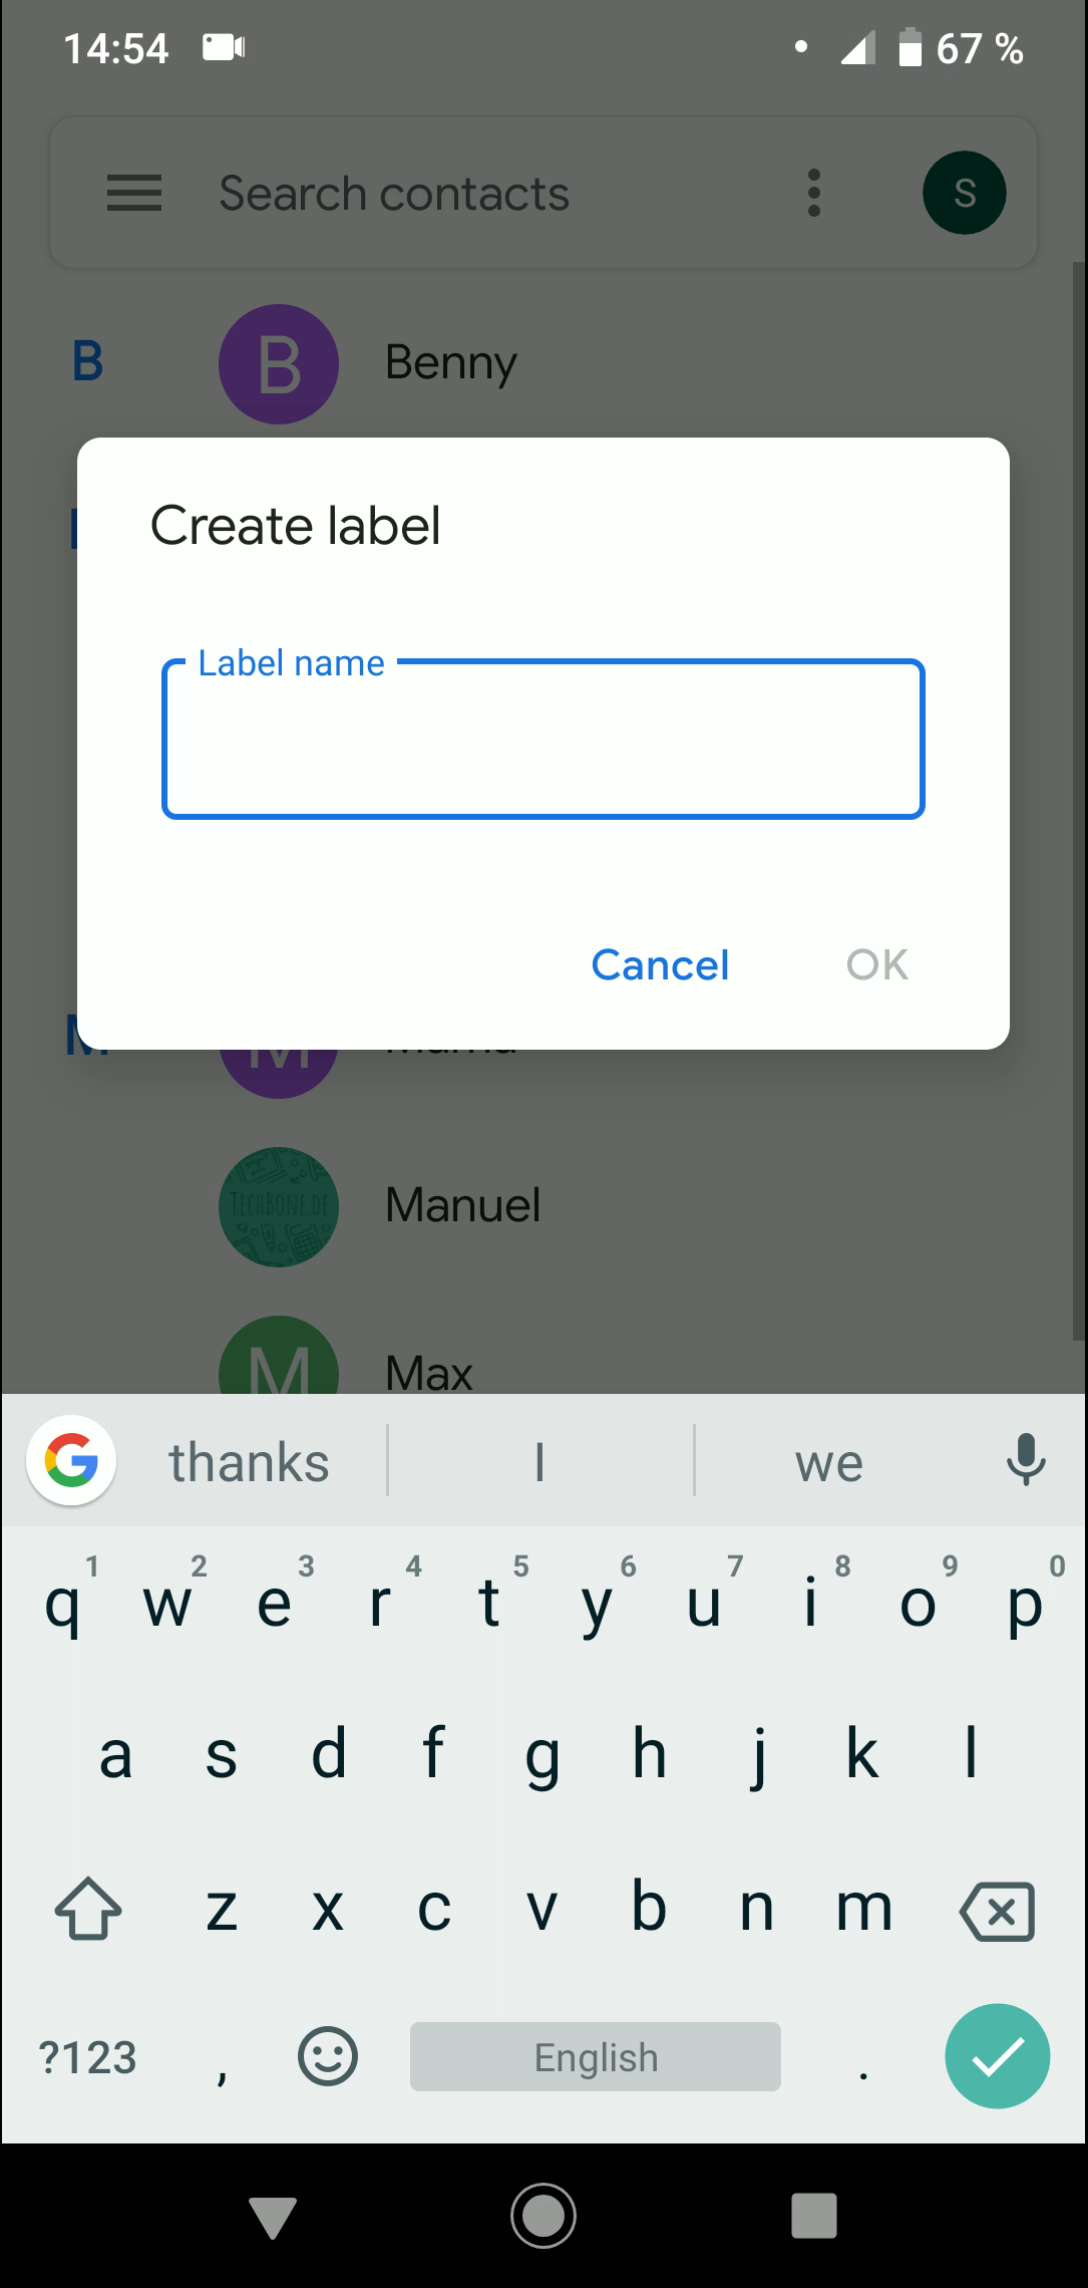 Step 4: Type in a Label name and confirm with OK